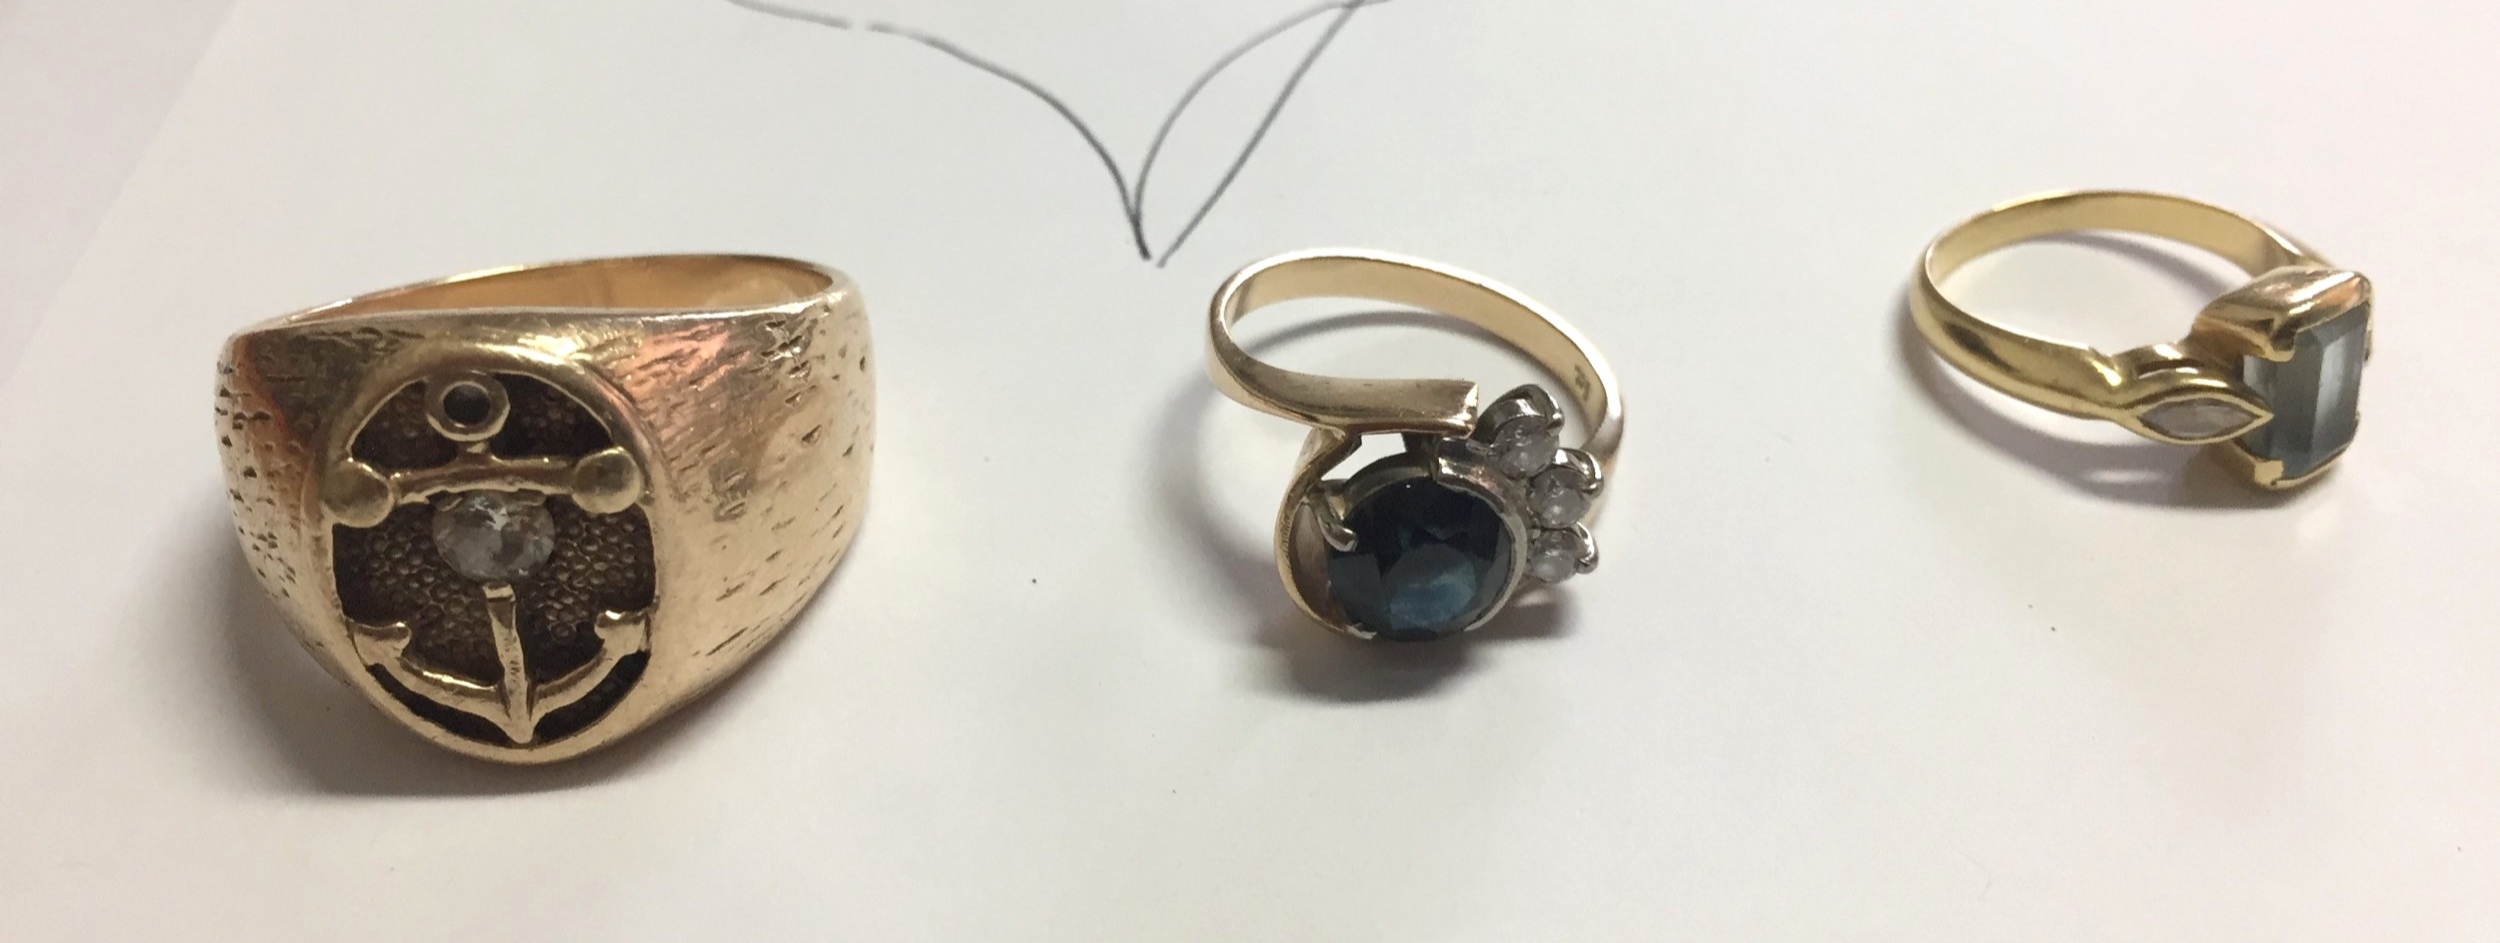 The ring to be remade on the left with some scrap jewellery.